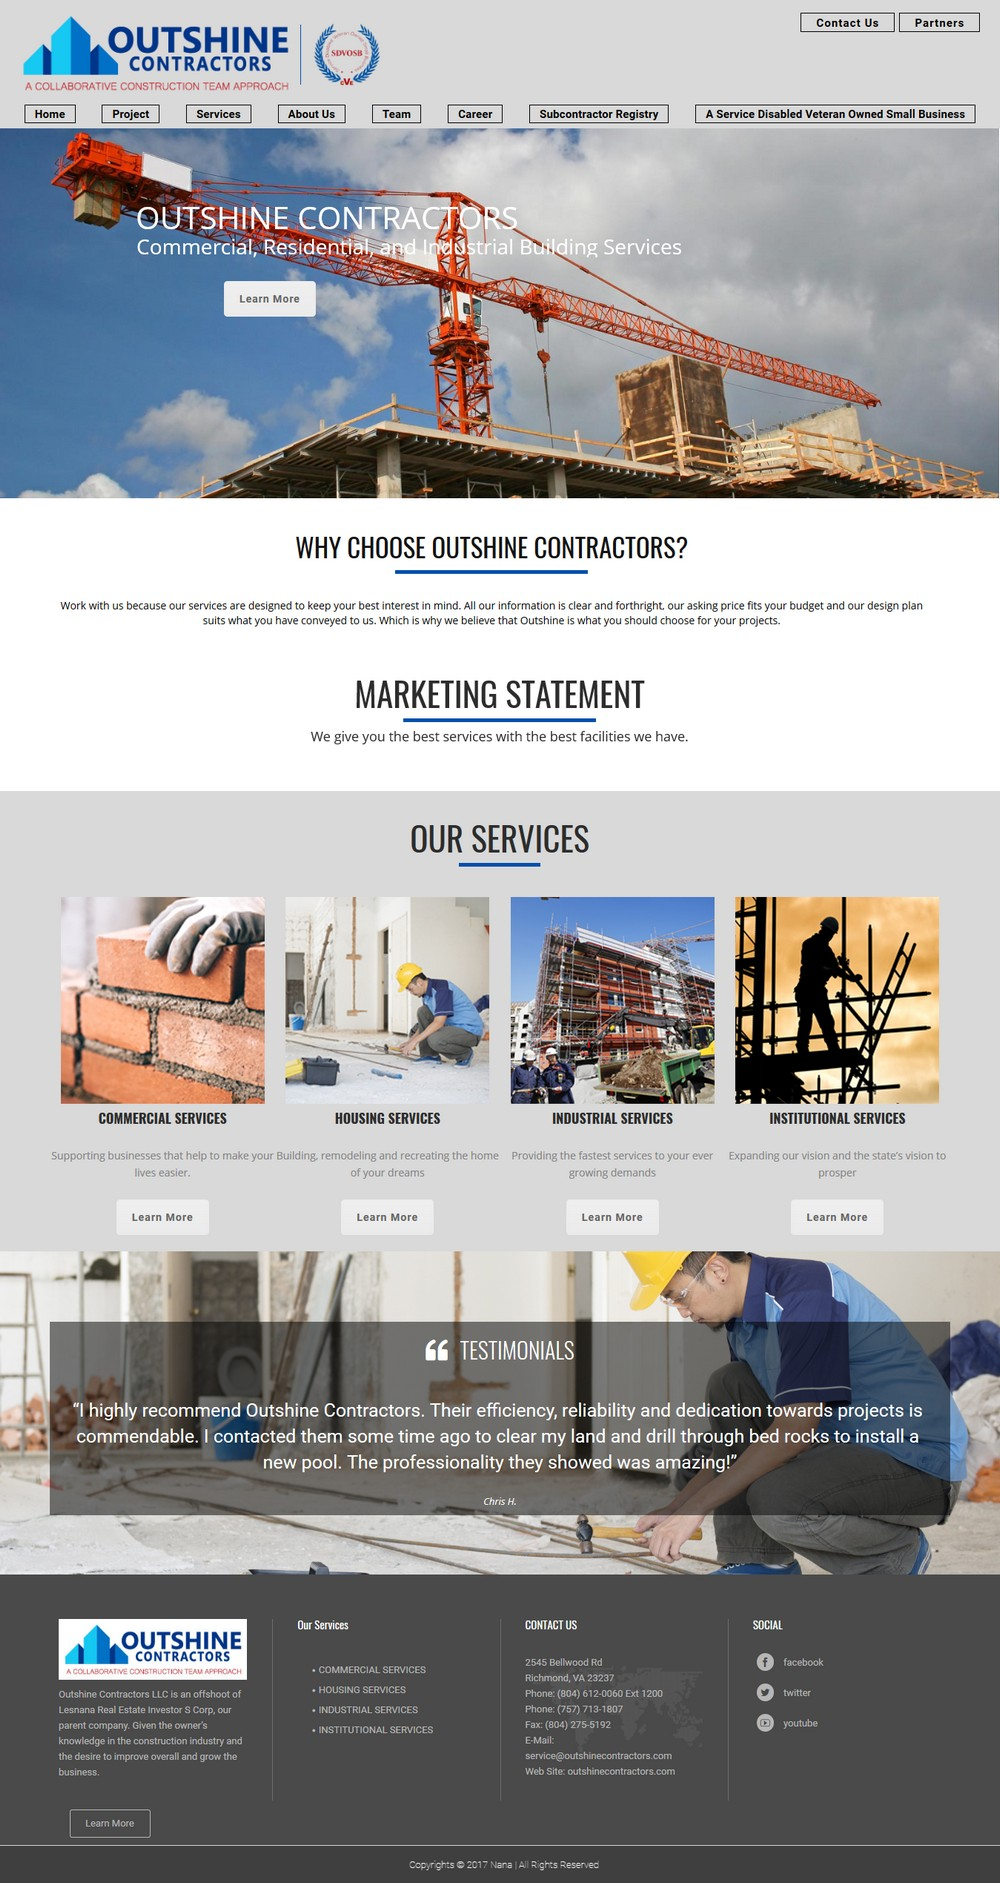 Outshine Contractors - Successfully Delivered Projects On-Time and On-Budget. Improved Website Conversation Rate By 80% Against Existing Control.